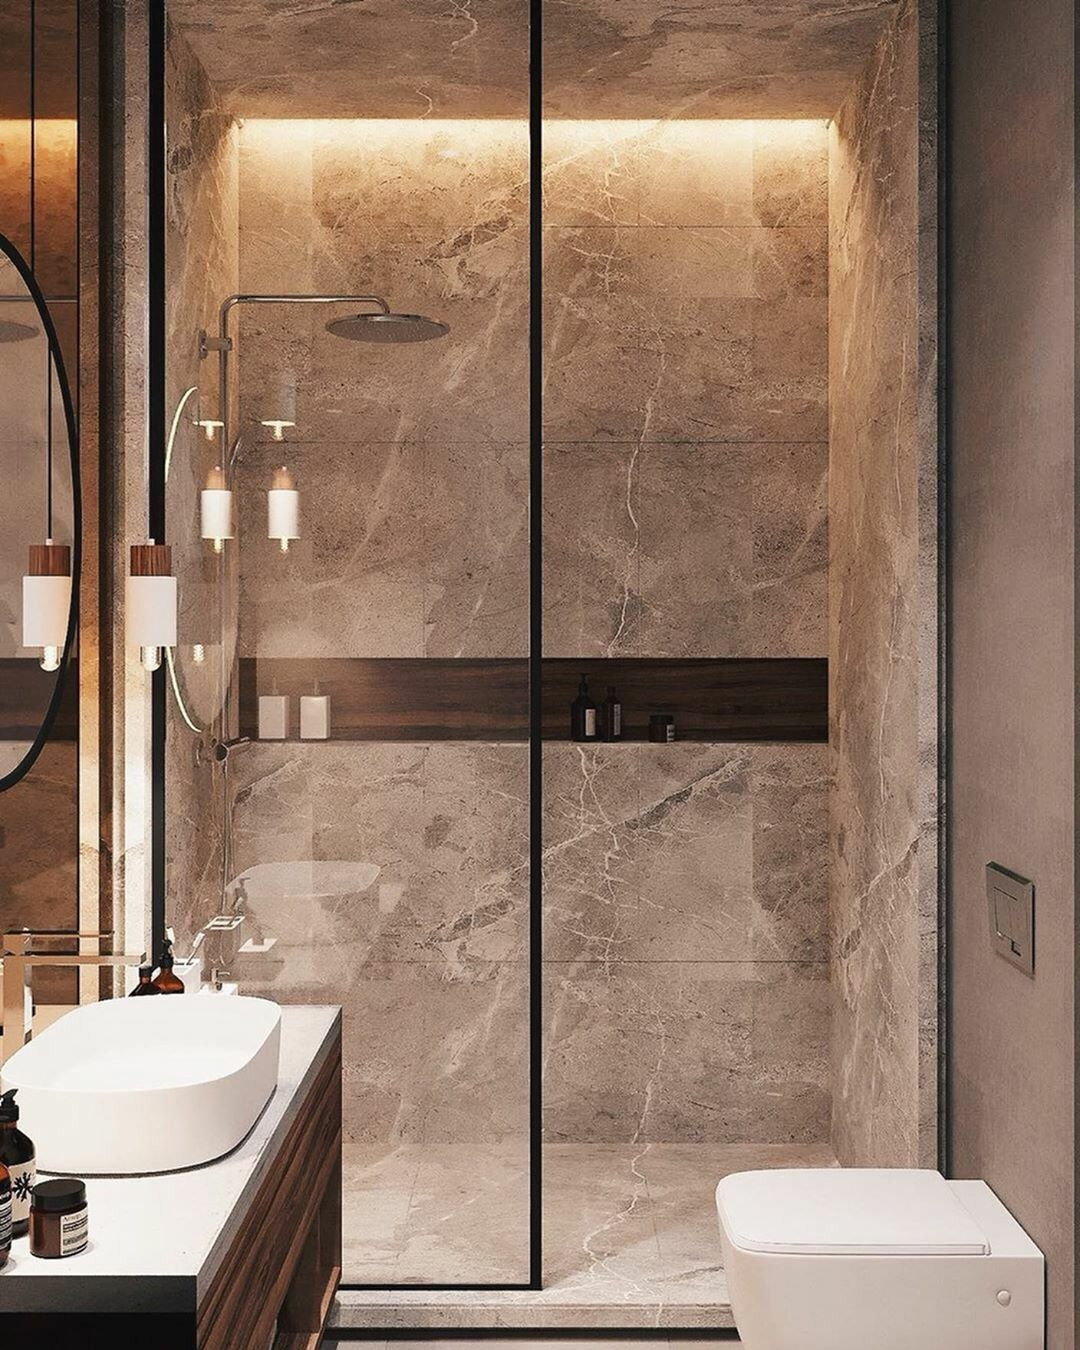 Bathroom #inspiration #Interior #loft Bathroom Inspiration // Loft